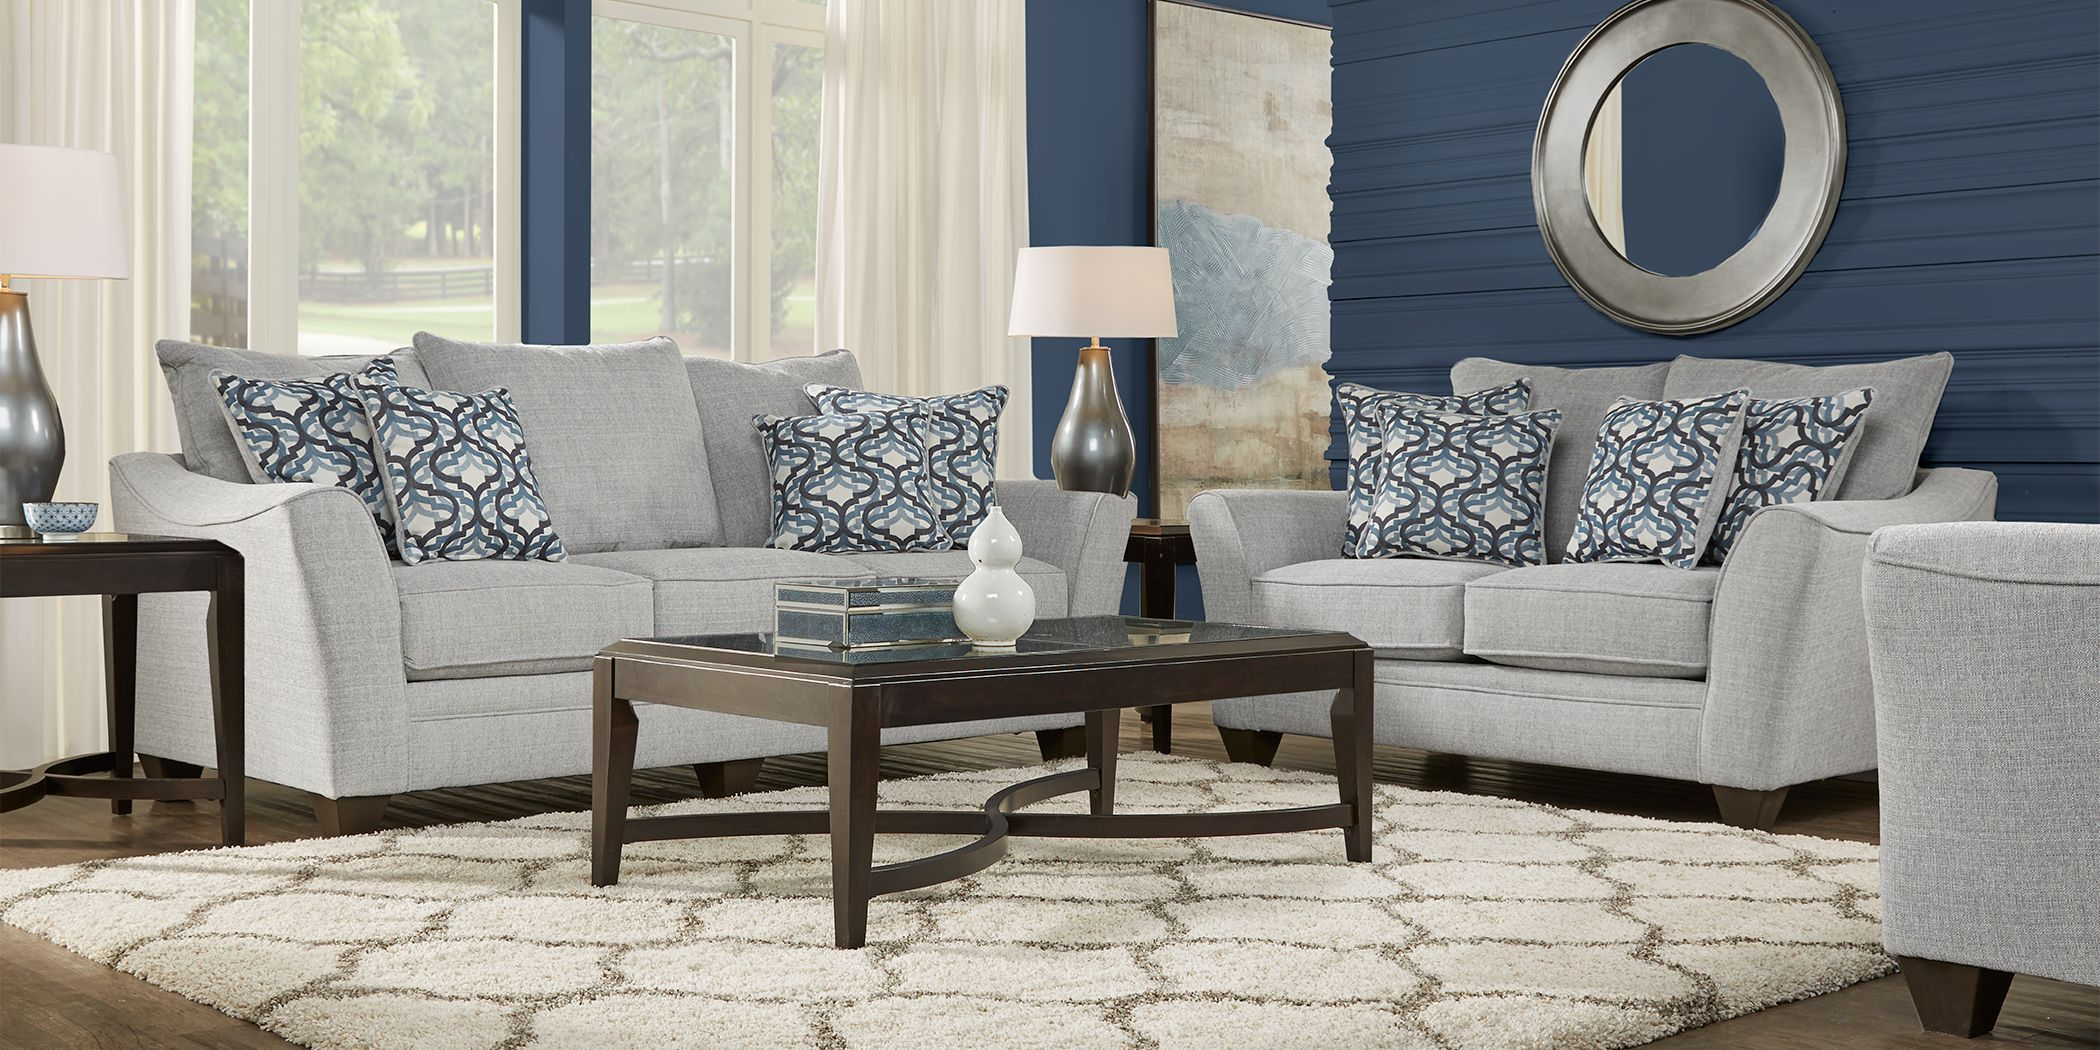 Victoria Park Dove 7 Pc Living Room Living Room Sets Furniture Rooms To Go Furniture Living Room Furniture